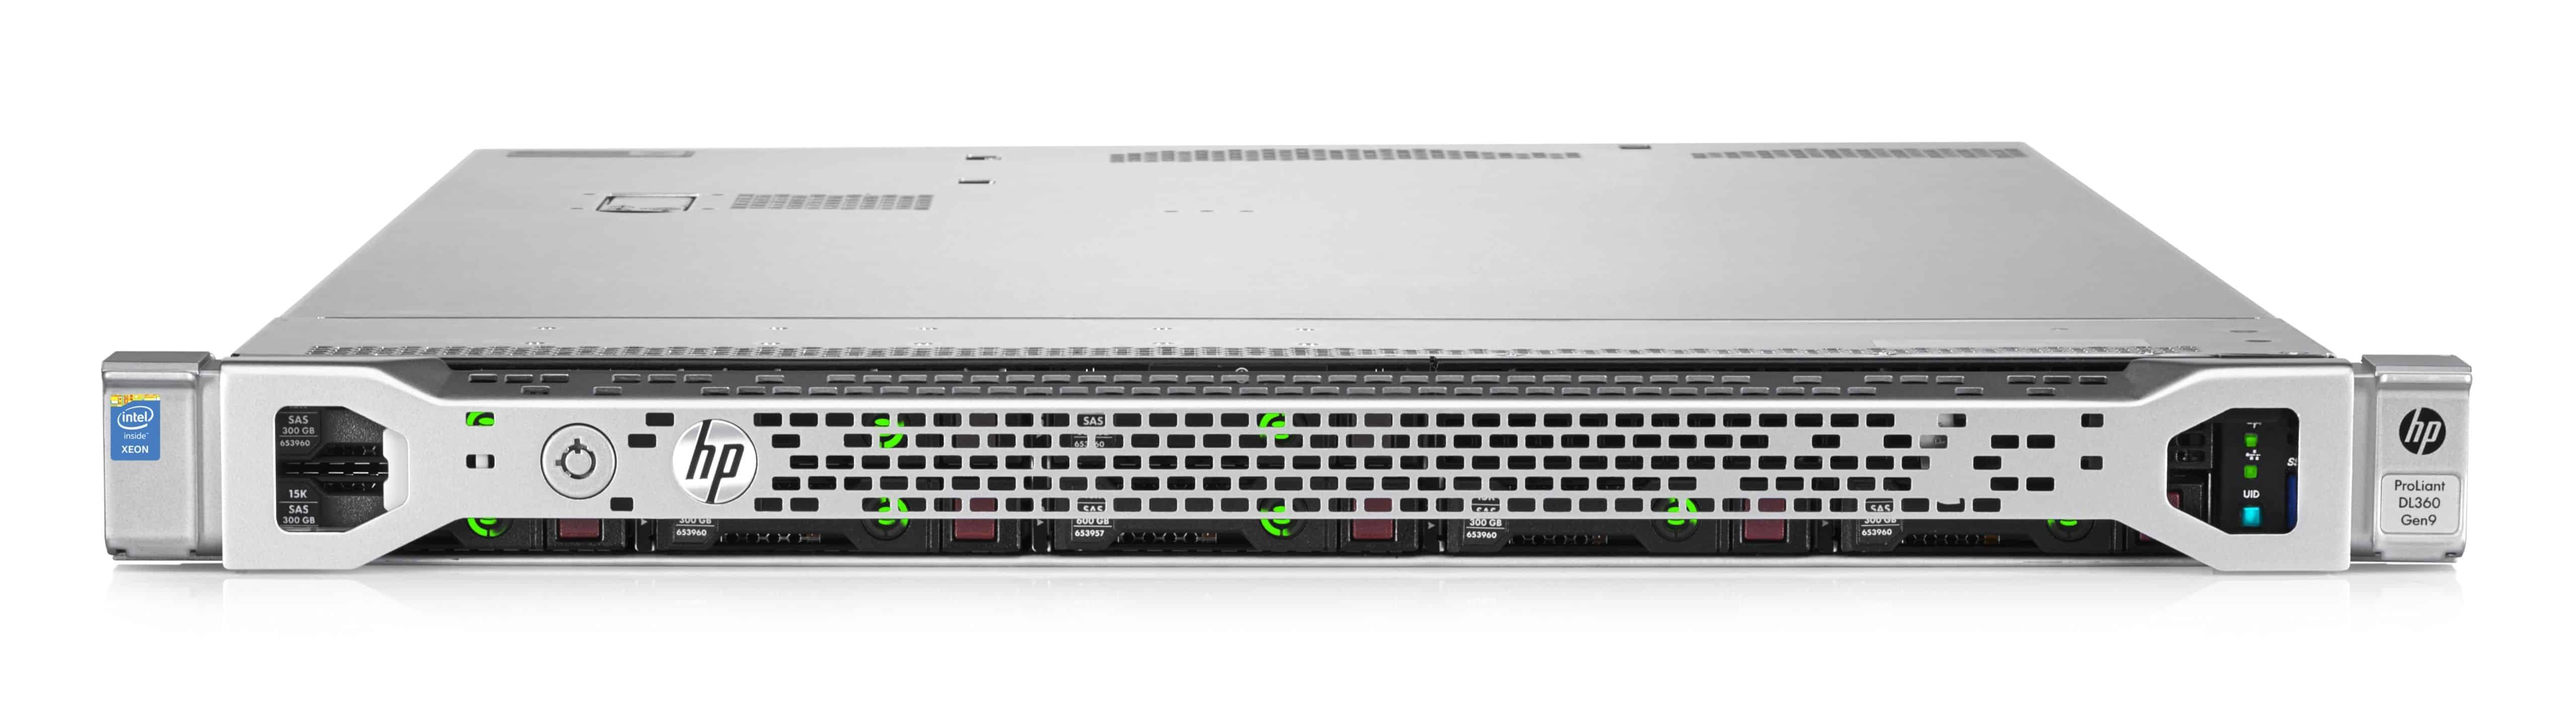 amazon HP Proliant DL360 Gen9 reviews HP Proliant DL360 Gen9 on amazon newest HP Proliant DL360 Gen9 prices of HP Proliant DL360 Gen9 HP Proliant DL360 Gen9 deals best deals on HP Proliant DL360 Gen9 buying a HP Proliant DL360 Gen9 lastest HP Proliant DL360 Gen9 what is a HP Proliant DL360 Gen9 HP Proliant DL360 Gen9 at amazon where to buy HP Proliant DL360 Gen9 where can i you get a HP Proliant DL360 Gen9 online purchase HP Proliant DL360 Gen9 HP Proliant DL360 Gen9 sale off HP Proliant DL360 Gen9 discount cheapest HP Proliant DL360 Gen9 HP Proliant DL360 Gen9 for sale HP Proliant DL360 Gen9 products HP Proliant DL360 Gen9 tutorial HP Proliant DL360 Gen9 specification HP Proliant DL360 Gen9 features HP Proliant DL360 Gen9 test HP Proliant DL360 Gen9 series HP Proliant DL360 Gen9 service manual HP Proliant DL360 Gen9 instructions HP Proliant DL360 Gen9 accessories hp proliant dl360 gen9 server maintenance and service guide hp proliant dl360 gen9 smart storage administrator hp proliant dl360 gen9 smart array hp proliant dl360 gen9 amazon base system device hp proliant dl360 gen9 bios hp proliant dl360 gen9 hp proliant dl360 gen9 boot from usb hp proliant dl360 gen9 battery hp proliant dl360 gen9 btu hp proliant dl360 gen9 base quickspecs hp proliant dl360 gen9 bios upgrade hp proliant dl360 gen9 bios version hp proliant dl360 gen9 brochure hp proliant dl360 gen9 caracteristicas hp proliant dl360 gen9 power consumption hp proliant dl360 gen9 memory configuration hp proliant dl360 gen9 raid configuration hp proliant dl360 gen9 warranty check hp proliant dl360 gen9 raid controller hp proliant dl360 gen9 sd card hp proliant dl360 gen9 8sff configure-to-order server hp proliant dl360 gen9 cpu hp proliant dl360 gen9 vmware compatibility driver hp proliant dl360 gen9 dimensions hp proliant dl360 gen9 download driver hp proliant dl360 gen9 drivers hp proliant dl360 gen9 datasheet hp proliant dl360 gen9 hp proliant dl360 gen9 hard drives hp proliant dl360 gen9 datasheet pdf hp proliant dl360 gen9 spp download hp proliant dl360 gen9 server dimensions hp proliant dl360 gen9 end of life hp proliant dl360 gen9 eol hp proliant dl360 gen9 esxi hp proliant dl360 gen9 e5-2630v3 hp proliant dl360 gen9 end of support hp proliant dl360 gen9 e5-2620v4 hp proliant dl360 gen9 vmware esxi hp proliant dl360 gen9 e5 hp proliant dl360 gen9 eosl hp proliant dl360 gen9 intel xeon e5-2630v3 8-core firmware hp proliant dl360 gen9 hp service pack for proliant dl360 gen9 hp proliant dl360 gen9 server firmware update hp proliant dl360 gen9 boot from cd hp proliant dl360 gen9 fan drivers for hp proliant dl360 gen9 hp proliant dl360 gen9 fiche technique hp proliant dl360 gen9 server user guide hp proliant dl360 gen9 user guide hp proliant dl360 gen9 troubleshooting guide hp proliant dl360 generation9 (gen9) hp proliant dl360 gen9 guide hp proliant dl360 gen9 installation guide harga hp proliant dl360 gen9 how to install windows server 2012 r2 on a hp proliant dl360 gen9 hp proliant dl360 gen9 hdd hp proliant dl360 gen9 health led hp hpe proliant dl360 gen9 hp proliant dl360 gen9 hw supp install windows server 2016 on hp proliant dl360 gen9 hp proliant dl360 gen9 server price in india hp proliant dl360 gen9 memory installation hp proliant dl360 gen9 ilo firmware hp proliant dl360 gen9 ilo hp proliant dl360 gen9 led indicators hp proliant dl360 gen9 intelligent provisioning hp proliant dl360 gen9 ilo update hp proliant dl360 gen9 install windows 2012 hp proliant dl360 gen9 installation hp proliant dl360 gen9 rail kit hp proliant dl360 gen9 rack mount kit hp proliant dl360 gen9 led hp proliant dl360 gen9 latest firmware version hp proliant dl360 gen9 led status hp proliant dl360 gen9 linux hp proliant dl360 gen9 lff máy chủ hp proliant dl360 gen9 mib hp proliant dl360 gen9 hp proliant dl360 gen9 user manual hp proliant dl360 gen9 mtbf hp proliant dl360 gen9 server manual hp proliant dl360 gen9 manual hp proliant dl360 gen9 product number hp proliant dl360 gen9 nic teaming hp proliant dl360 gen9 network drivers hp proliant dl360 gen9 nic hp proliant dl360 gen9 serial number hp proliant dl360 gen9 netzteil hp proliant dl360 gen9 nvme hp proliant dl360 gen9 server - option parts hp proliant dl360 gen9 os compatibility hp proliant dl360 gen9 supported os hp proliant dl360 gen9 declaration of conformity hp proliant dl360 gen9 overview hp proliant dl360 gen9 driver pack hp proliant dl360 gen9 service pack hp proliant dl360 gen9 server price hp proliant dl360 gen9 server spare parts hp proliant dl360 gen9 power supply quickspecs hp proliant dl360 gen9 hp proliant dl360 gen9 quickspecs pdf hp proliant dl360 gen9 8sff quickspecs hp proliant dl360 gen9 quickspecs hp proliant dl360 gen9 server quickspecs hp proliant dl360 gen9 quickspec hp proliant dl360 gen9 raid hp proliant dl360 gen9 rack server hp proliant dl360 gen9 battery replacement hp proliant dl360 gen9 power requirements hp proliant dl360 gen9 server raid configuration hp proliant dl360 gen9 review servidor hp proliant dl360 gen9 serveur hp proliant dl360 gen9 serwer hp proliant dl360 gen9 support hp proliant dl360 gen9 spp hp proliant dl360 gen9 server hp proliant dl360 gen9 hp proliant dl360 gen9 specifications treiber hp proliant dl360 gen9 hp proliant dl360 gen9 tpm update bios hp proliant dl360 gen9 hp proliant dl360 gen9 uefi hp proliant dl360 gen9 memory upgrade hp proliant dl360 gen9 server bios update vmware hp proliant dl360 gen9 hp proliant dl360 gen9 visio hp proliant dl360 gen9 visio stencil hp proliant dl360 gen9 virtual install disk hp proliant dl360 gen9 weight hp proliant dl360 gen9 warranty hp proliant dl360 gen9 server weight hp proliant dl360 gen9 windows server 2016 hp proliant dl360 gen9 watts hp proliant dl360 gen9 install windows 2016 hp proliant dl360 gen9 windows server 2012 hp proliant dl360 gen9 intel xeon e5-2620v4 hp proliant dl360 gen9 1u hp proliant dl360 gen9 ラックマウント型 (1u) hp proliant dl360 gen9 1u server hp proliant dl360 gen9 2u hp proliant dl360 gen9 e5-2650v3 hp proliant dl360 gen9 e5-2640v3 hp proliant dl360 gen9 e5-2640v4 hp proliant dl360 gen9 4lff hp proliant dl360 gen9 esxi 5.5 hp proliant dl360 gen9 esxi 6.5 hp proliant dl360 gen9 esxi 6.0 hp proliant dl360 gen9 esxi 6 hp proliant dl360 gen9 centos 7 hp proliant dl360 gen9 8sff cto server hp proliant dl360 gen9 8sff hp proliant dl360 gen9 8sff datasheet hpe proliant dl360 gen9 hpe proliant dl360 gen9 drivers hpe proliant dl360 gen9 server spare parts hpe proliant dl360 gen9 server quickspecs hpe proliant dl360 gen9 support hpe proliant dl360 gen9 server user guide hp proliant dl360 gen9 bios update hp proliant dl360 gen9 base system device hp drivers proliant dl360 gen9 hp proliant dl360 gen9 dimensions hp proliant dl360 gen9 system degraded hp proliant dl360 gen9 firmware update hp proliant dl360 gen9 mib hp server proliant dl360 gen9 hp proliant dl360 gen9 server driver download hp proliant dl360 gen9 treiber hp proliant dl360 gen9 vmware hpe proliant dl360 gen9 server - option parts hpe proliant dl360 gen9 power consumption hpe proliant dl360 gen9 server datasheet hpe proliant dl360 gen9 price hp proliant dl360 gen9 download hp proliant server dl360 gen9 hp proliant dl360 gen9 hp proliant dl360 gen9 bios hp proliant dl360 gen9 configurator hp proliant dl360 gen9 configure raid hp proliant dl360 gen9 centos hp proliant dl360 gen9 ilo configuration hpe proliant dl360 gen9 server - configuring memory hpe proliant dl360 gen9 configuration hpe proliant dl360 gen9 cdw hp proliant dl360 gen9 drivers hp proliant dl360 gen9 datasheet hp proliant dl360 gen9 diagnostics hp proliant dl360 gen9 documentation hpe proliant dl360 gen9 datasheet hp proliant dl360 gen9 server datasheet hp proliant dl360 gen9 e5-2630v4 hpe proliant dl360 gen9 firmware download hpe proliant dl360 gen9 ilo firmware hpe proliant dl360 generation9 (gen9) hpe proliant dl360 gen9 installation guide hpe proliant dl360 generation9 (gen9) datasheet hpe proliant dl360 generation9 (gen9) quickspecs hpe proliant dl360 generation9 (gen9) price hp proliant dl360 gen9 ilo firmware download hp proliant dl360 gen9 latest firmware hpe proliant dl360 gen9 end of life hpe proliant dl360 gen9 led hp proliant dl360 gen9 memory hp proliant dl360 gen9 max memory hpe proliant dl360 gen9 manual hpe proliant dl360 gen9 product number hpe proliant dl360 gen9 server product number hpe proliant dl360 gen9 option parts hp proliant dl360 gen9 price hp proliant dl360 gen9 pdf hp proliant dl360 gen9 performance hp proliant dl360 gen9 parts hpe proliant dl360 gen9 pdf hpe proliant dl360 gen9 server price hpe proliant dl360 gen9 quickspec hp proliant dl360 gen9 raid setup hp proliant dl360 gen9 release date hpe proliant dl360 gen9 raid hpe proliant dl360 gen9 raid configuration hp proliant dl360 gen9 specs hp proliant dl360 gen9 server hp proliant dl360 gen9 support hp proliant dl360 gen9 ssd hp proliant dl360 gen9 spp hpe proliant dl360 gen9 treiber hpe proliant dl360 gen9 fiche technique hp proliant dl360 gen9 update firmware hp proliant dl360 gen9 usb boot hp proliant dl360 gen9 ubuntu hp proliant dl360 gen9 update hp proliant dl360 gen9 uefi boot hpe proliant dl360 gen9 v4 hpe proliant dl360 gen9 vmware hpe proliant dl360 gen9 vs gen10 hpe proliant dl360 gen9 weight hpe proliant dl360 gen9 server weight hpe proliant dl360 gen9 intel xeon e5-2630v4 hpe proliant dl360 gen9 intel xeon e5-2620v4 8-core hpe proliant dl360 gen9 intel xeon e5-2630v4 10-core hpe proliant dl360 gen9 intel xeon e5-2620v4 hpe proliant dl360 gen9 intel xeon hpe proliant dl360 gen9 - xeon e5-2630v4 hpe proliant dl360 gen9 e5-2630v4 hpe proliant dl360 gen9 e5-2650v4 hpe proliant dl360 gen9 e5-2603v4 hpe proliant dl360 gen9 4lff hpe proliant dl360 gen9 8sff hpe proliant dl360 gen9 8sff datasheet hpe proliant dl360 gen9 8sff cto server